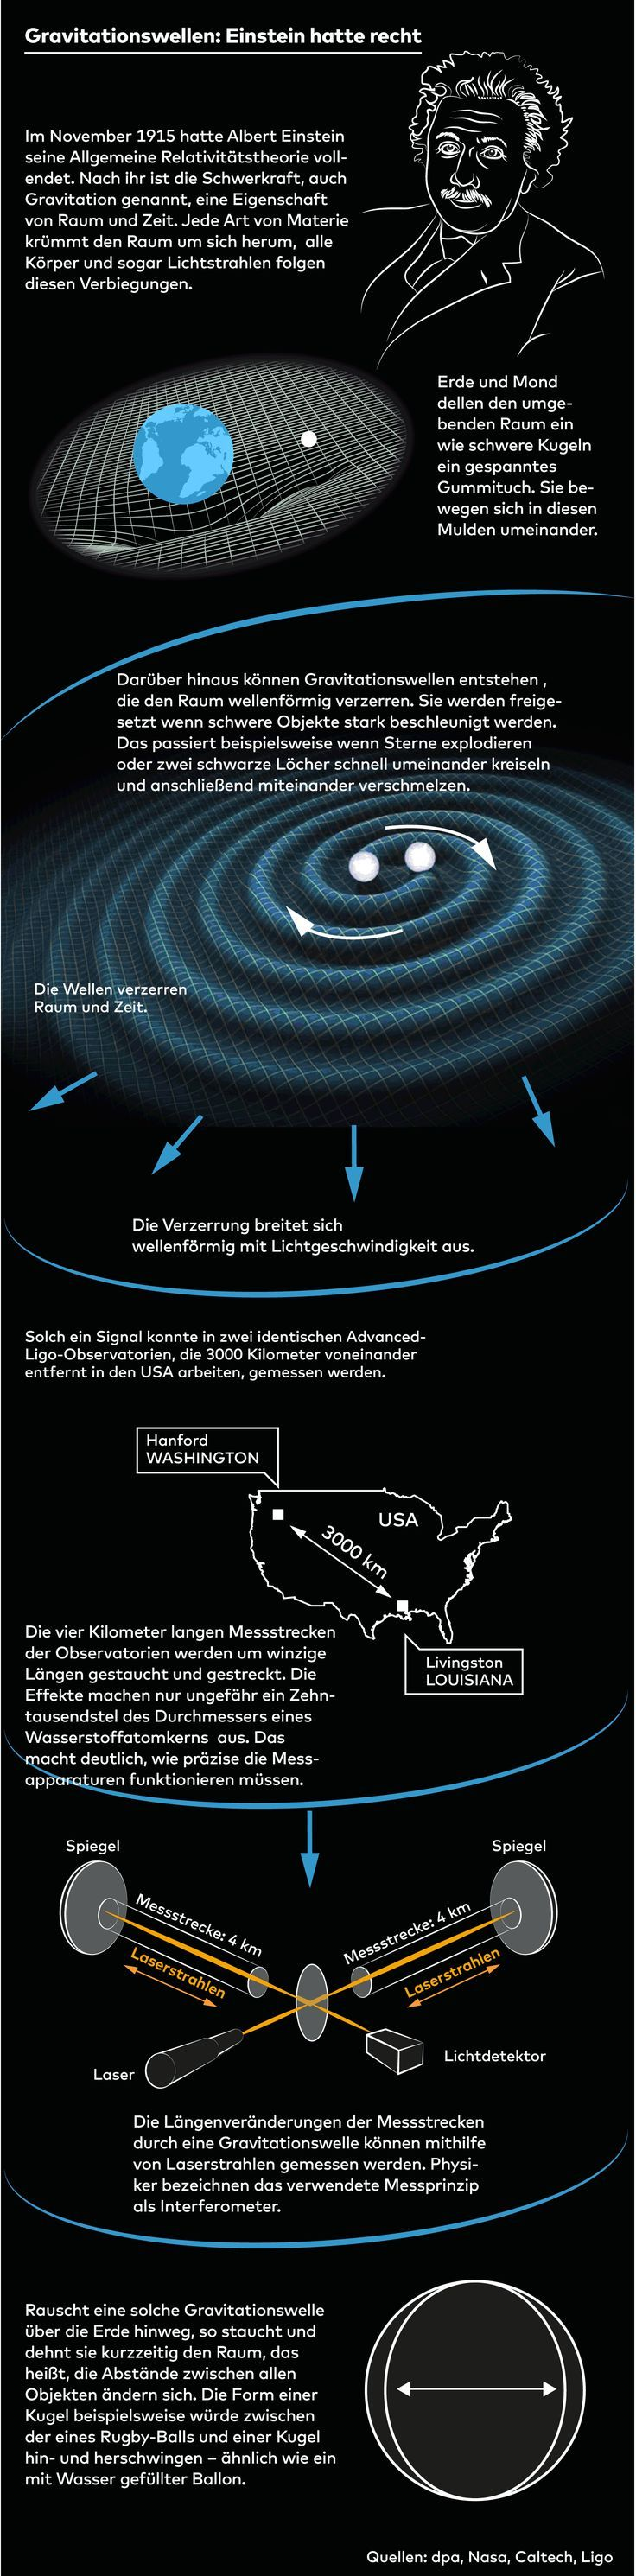 Gravitational Waves This Is How They Work Gravitational Waves Work Gravitational Waves Astronomy Science Theoretical Physics